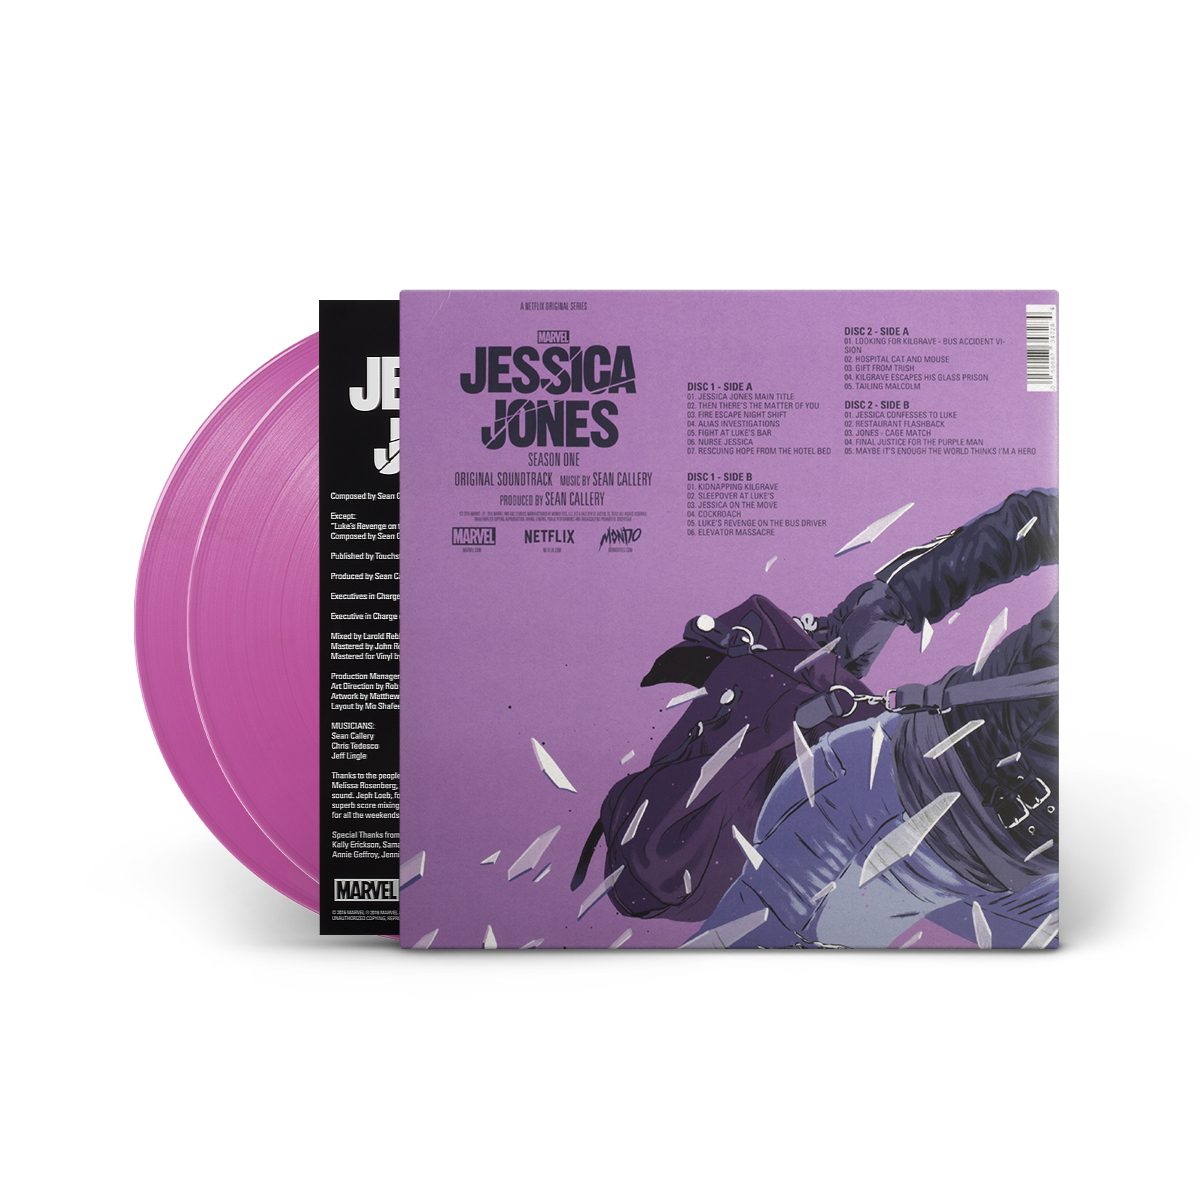 Marvel's Jessica Jones - Original Soundtrack LP